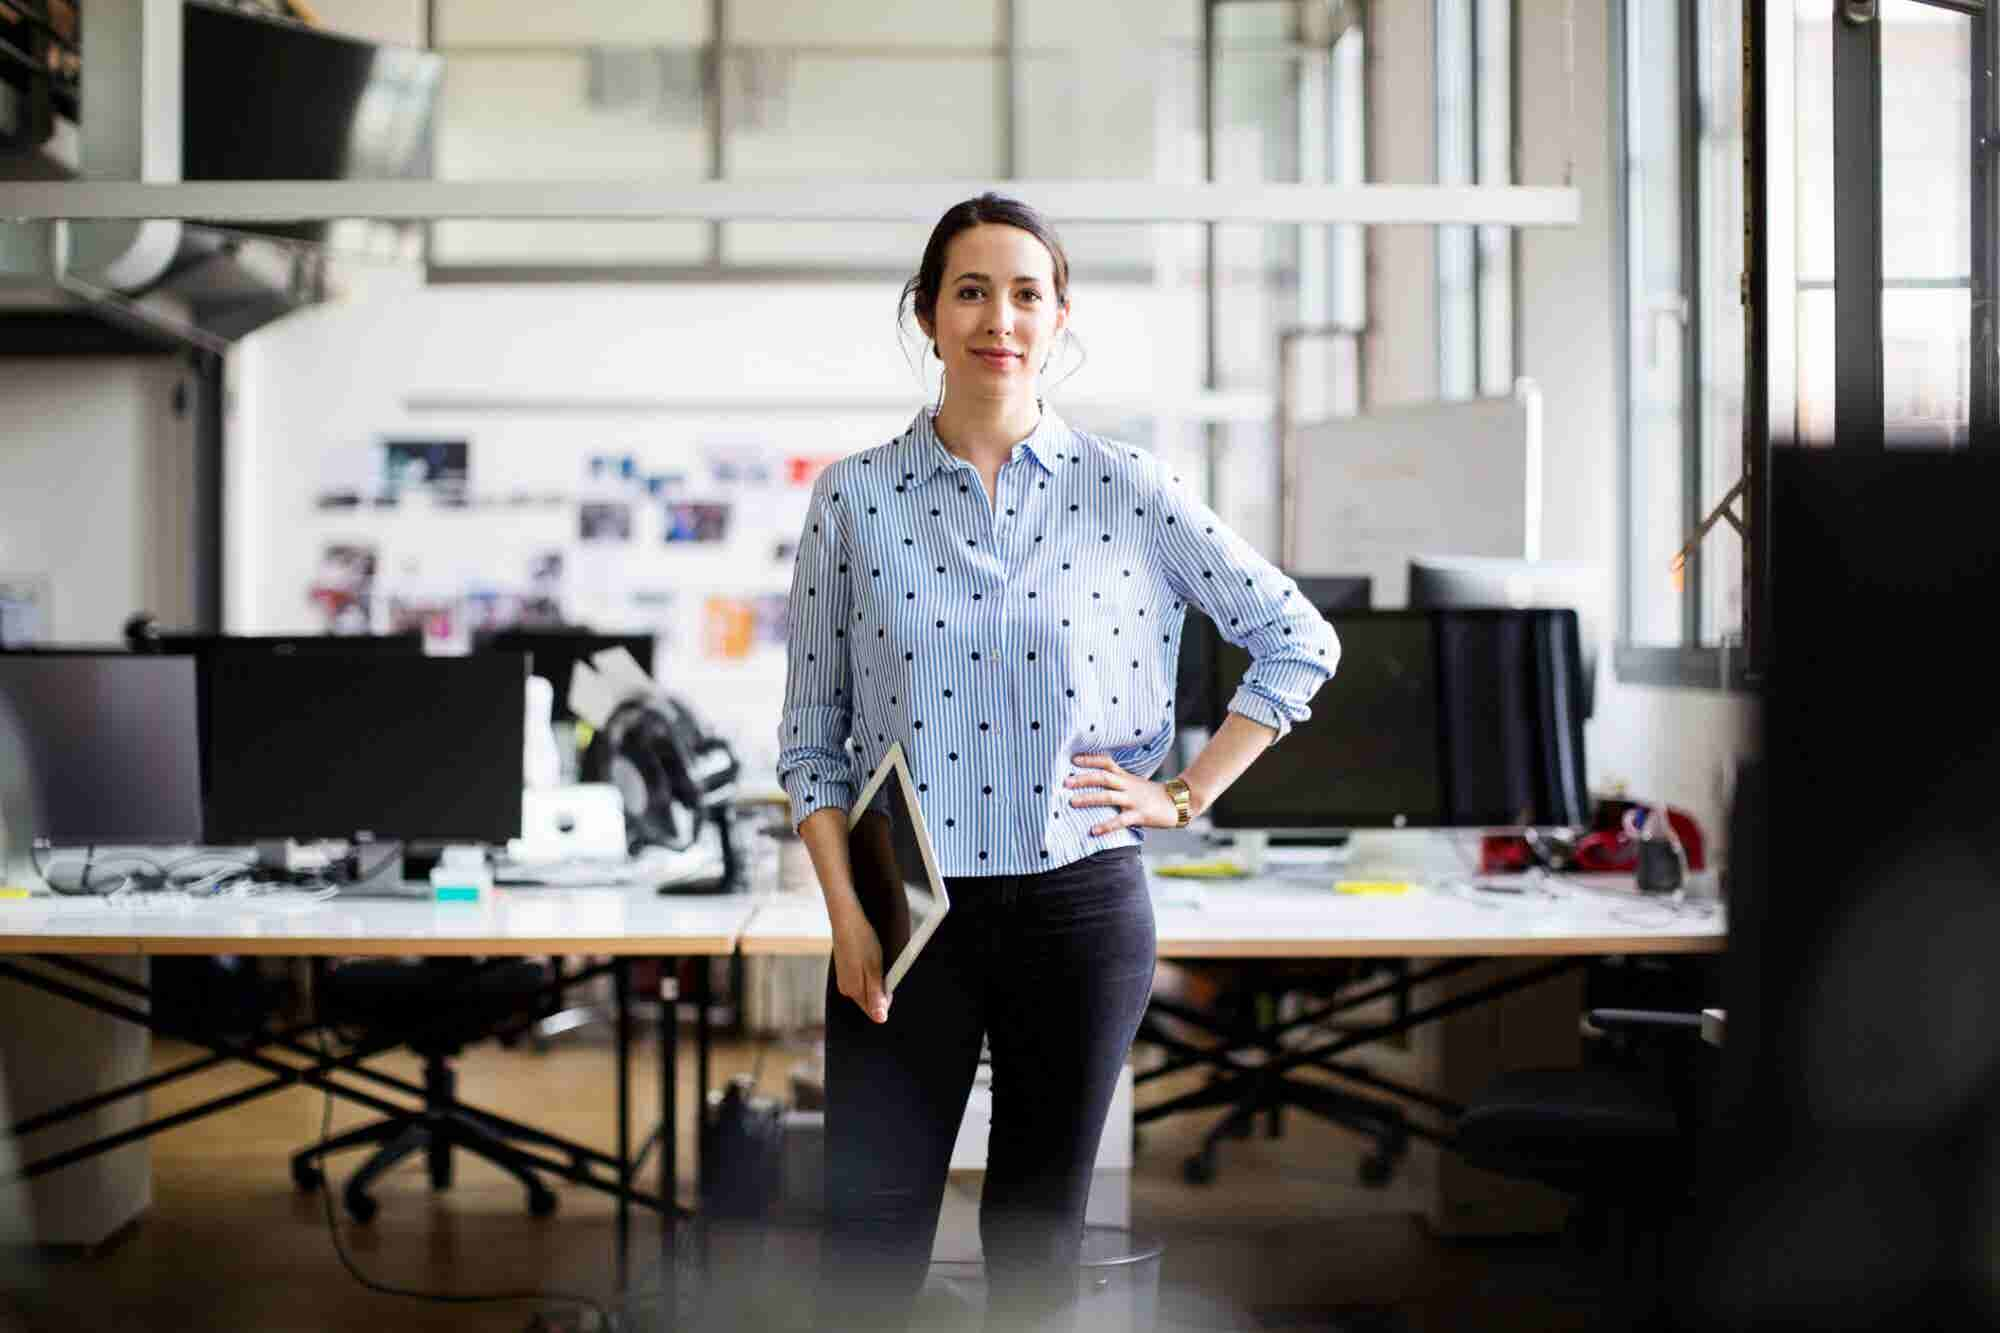 Stop Being So Modest! Why Women in Business Need to Get Comfortable with Bragging